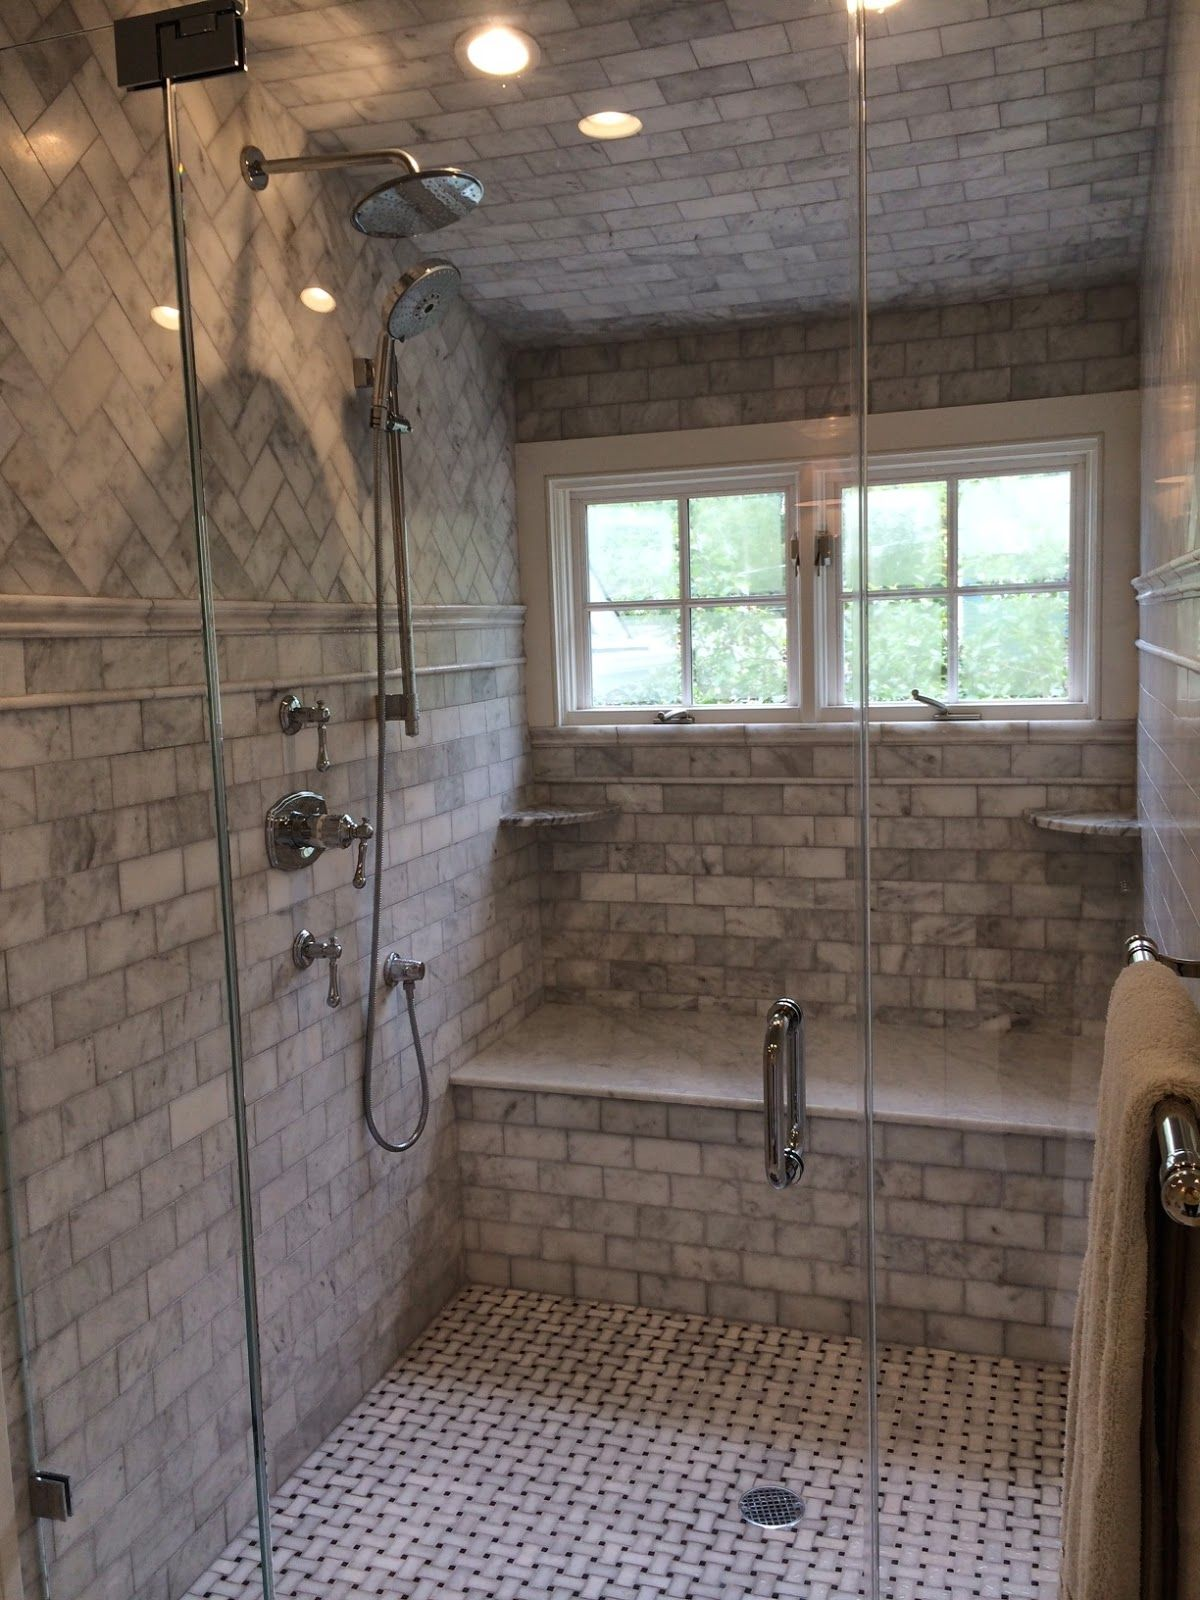 Saw a Beautiful Bathroom Today | Content in a Cottage